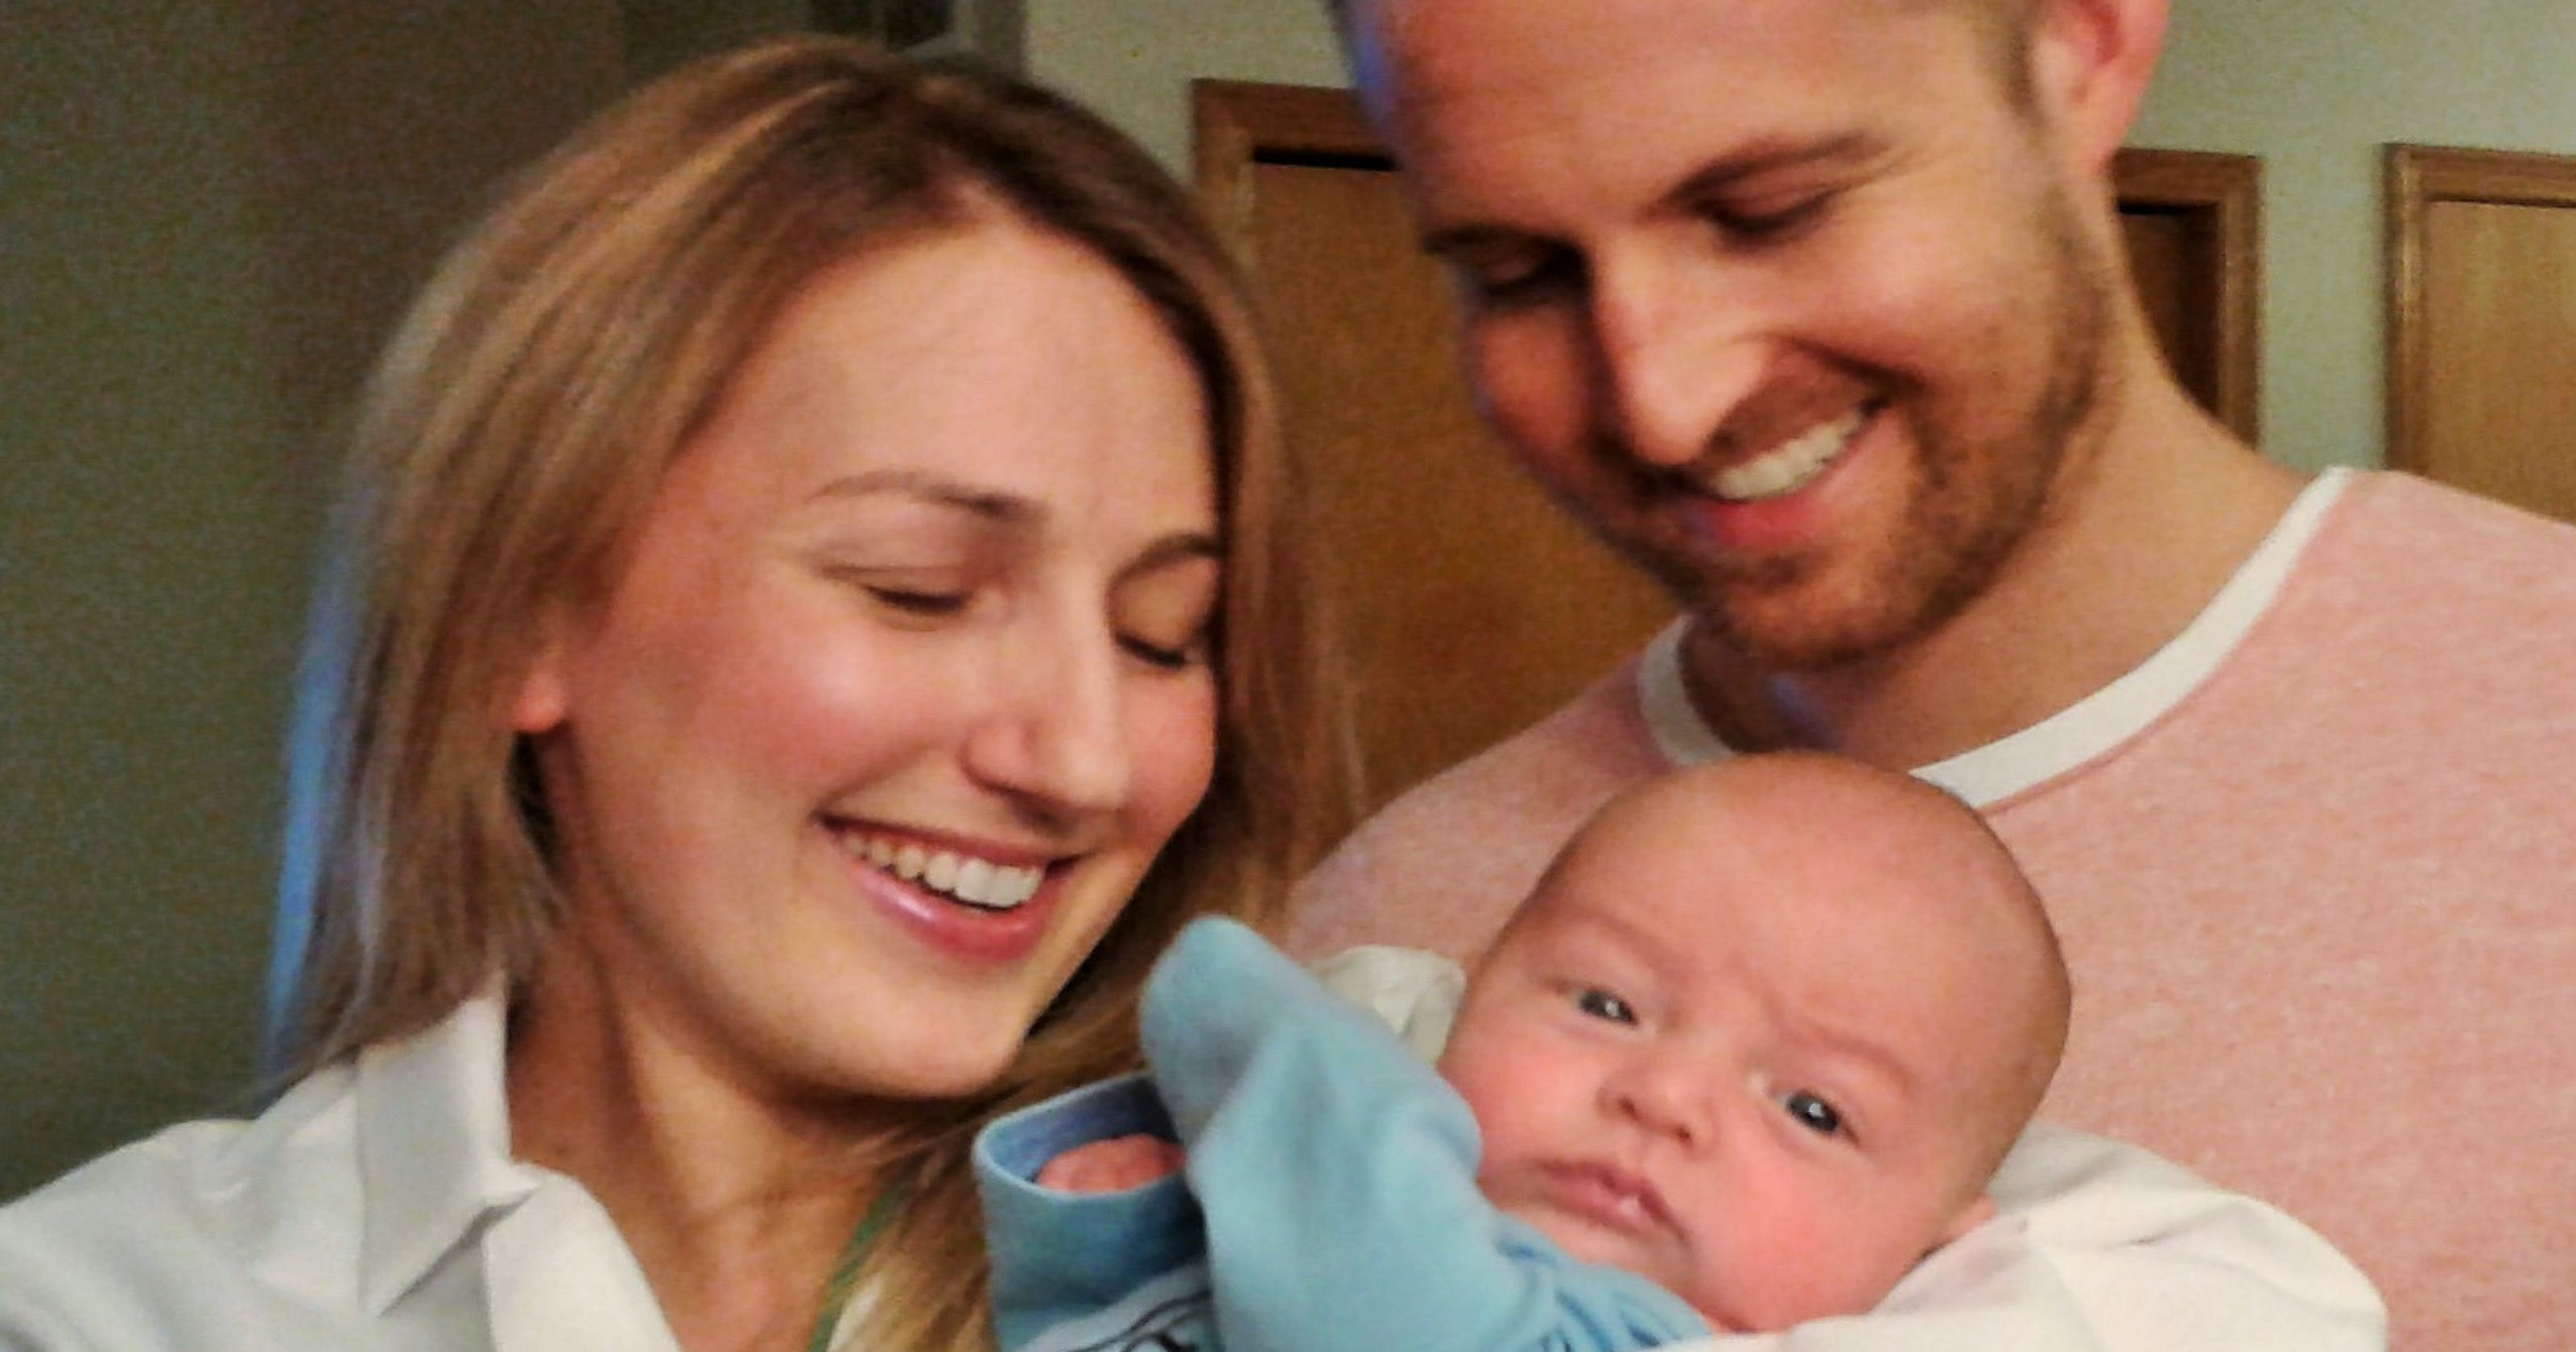 Baby-delivering doc makes a quick switch to patient, then mom